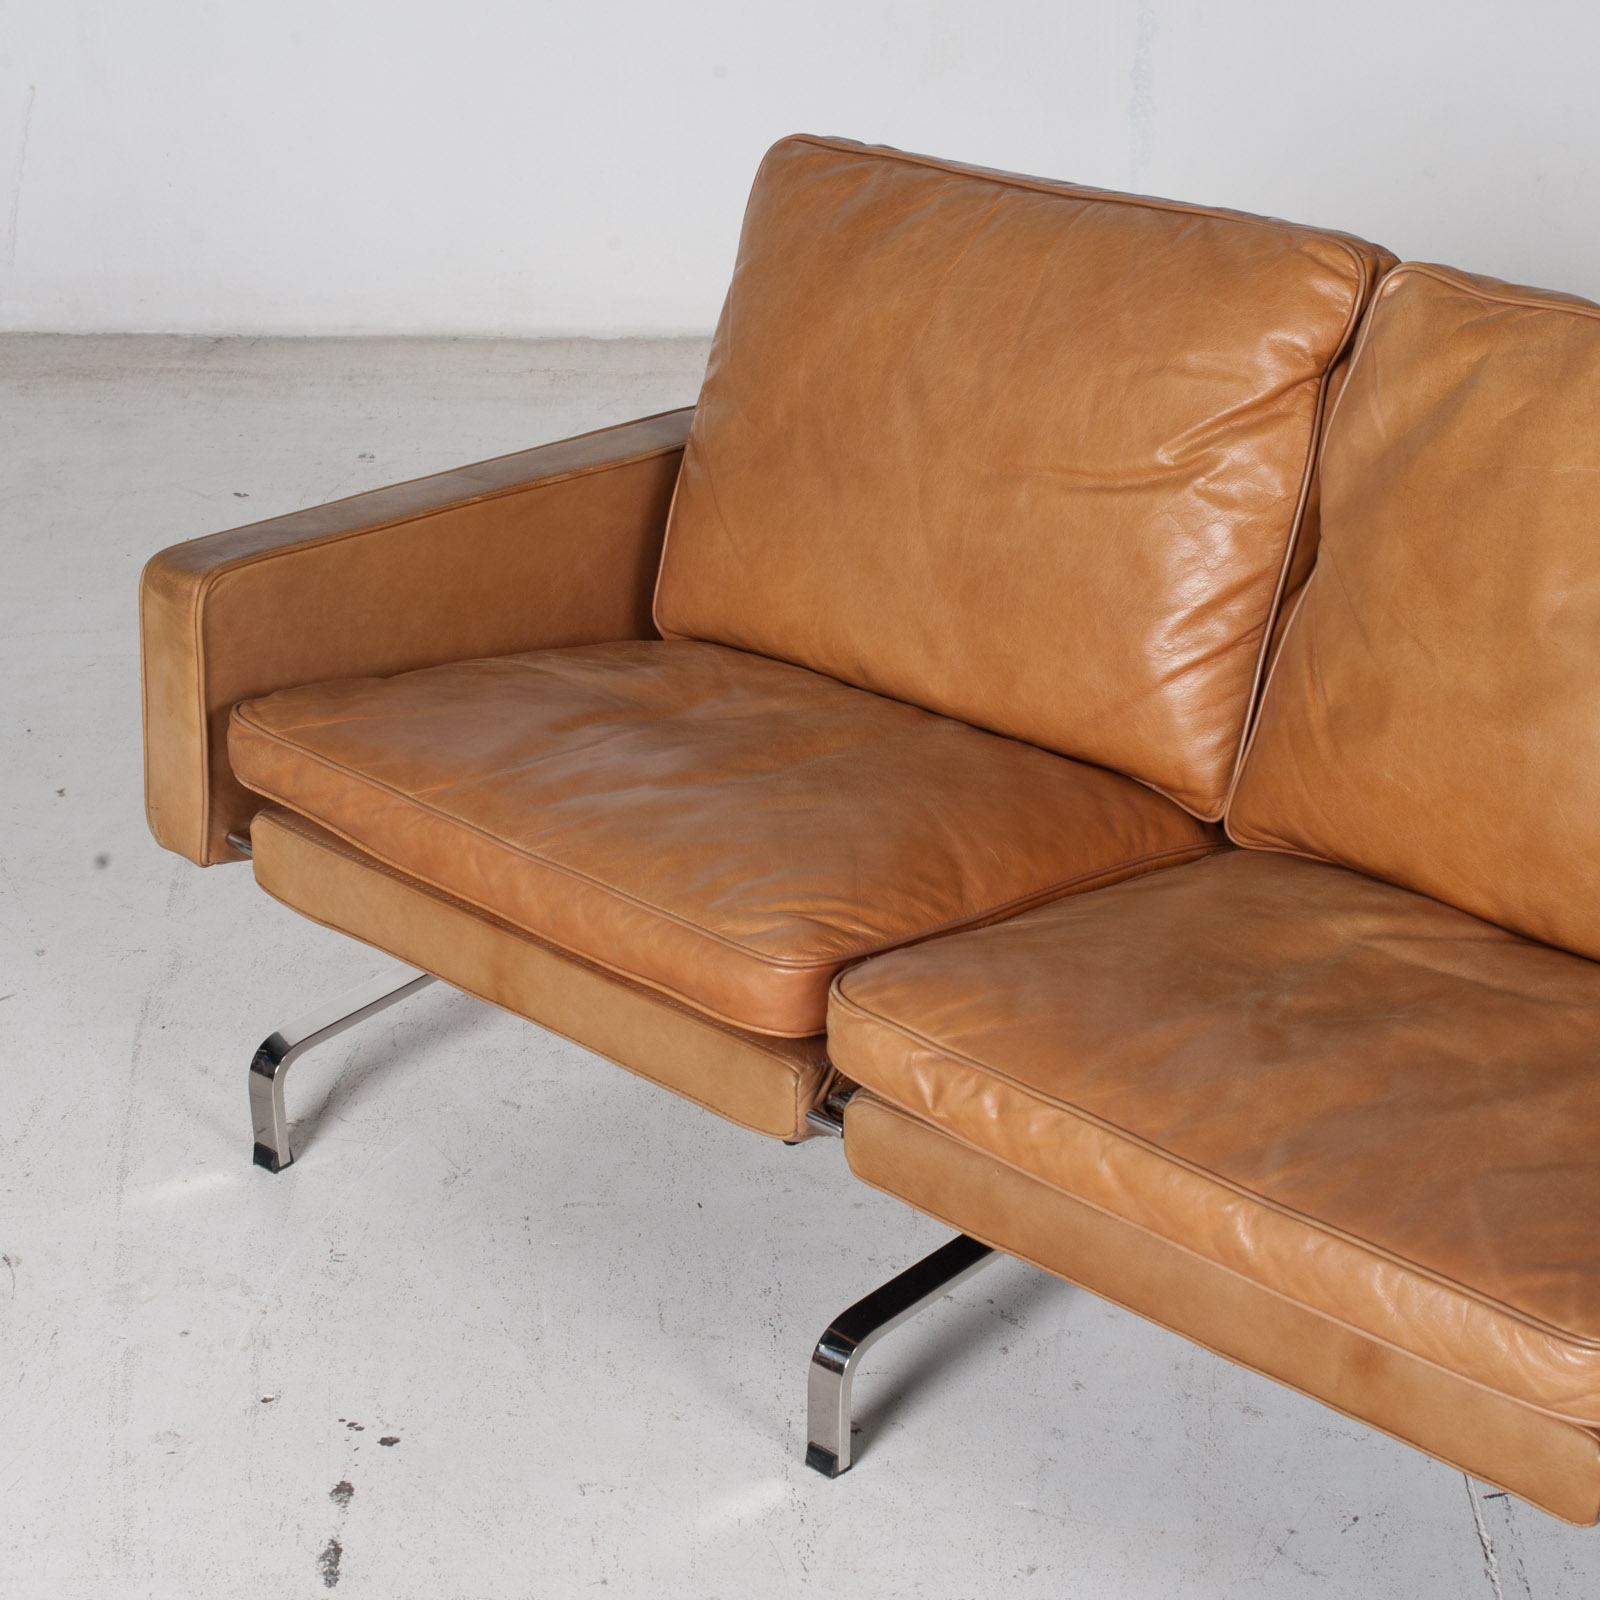 3 Seat Sofa By Poul Kjaerholm For Ejvind Kold Christensen In Tan Leather And Chrome, 1960s, Denmark 5